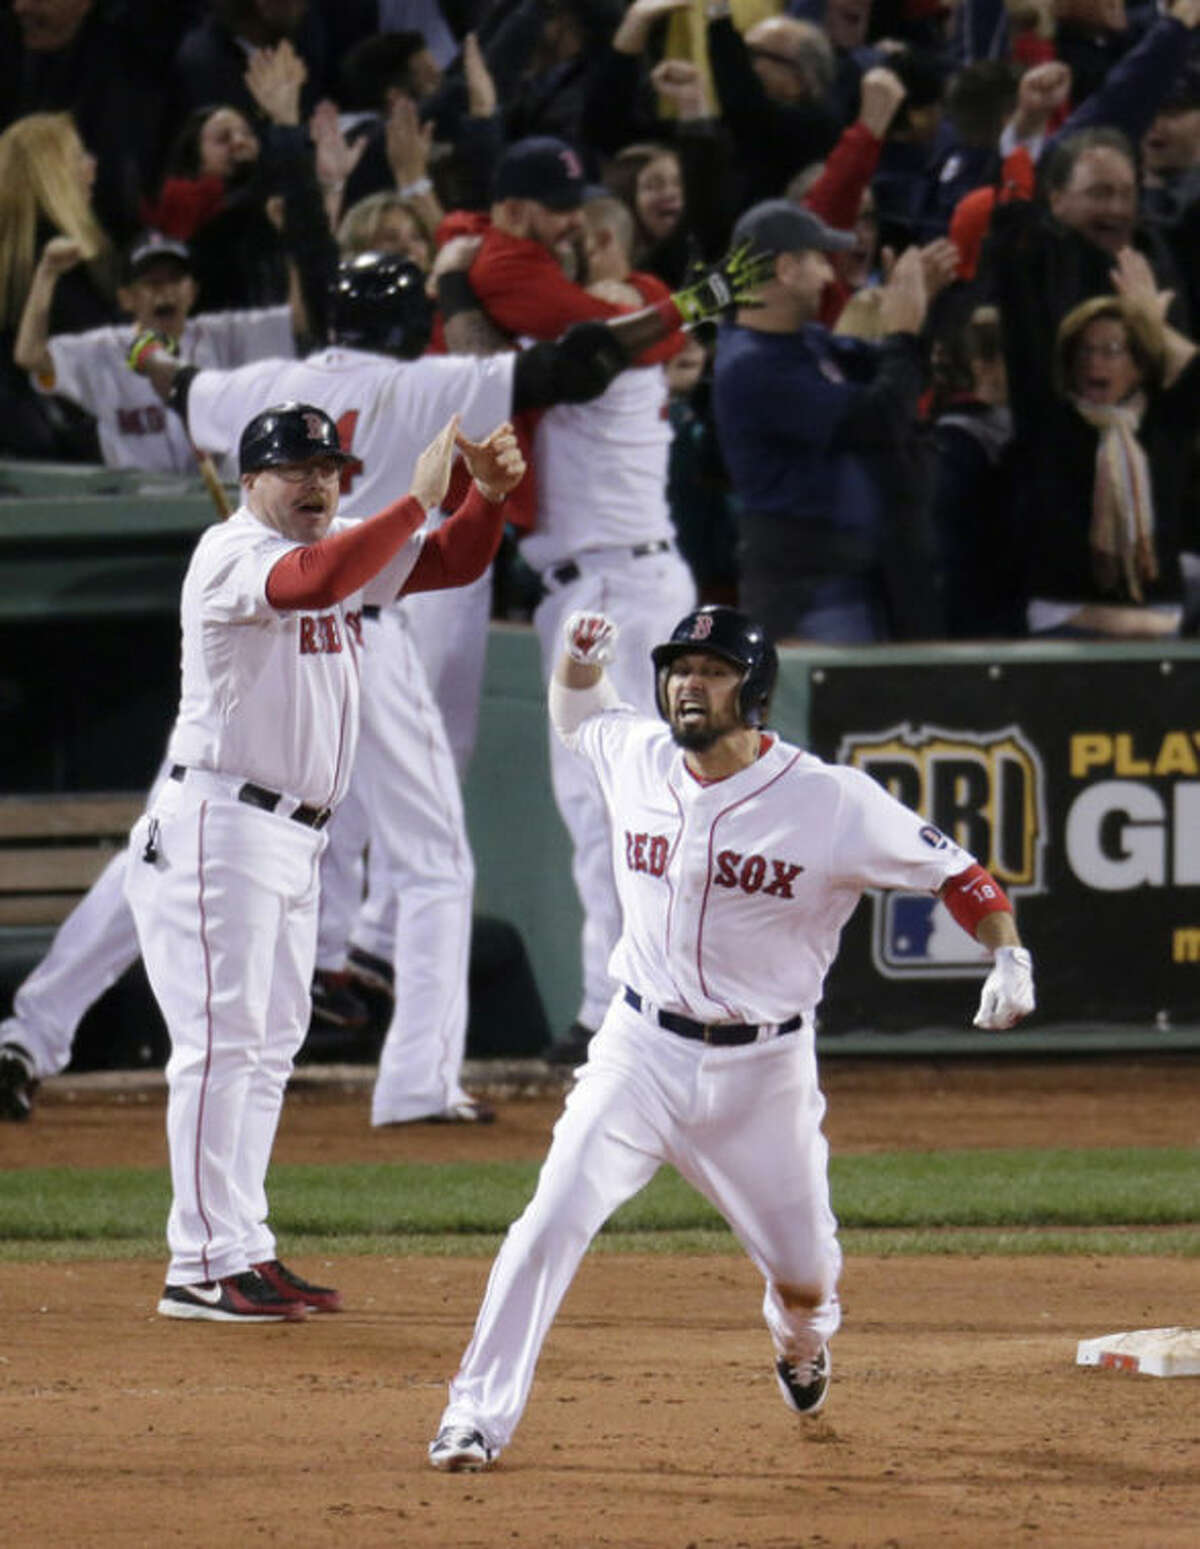 Boston Red Sox's Shane Victorino, front, celebrates his grand slam against the Detroit Tigers as he rounds first base in the seventh inning during Game 6 of the American League baseball championship series on Saturday, Oct. 19, 2013, in Boston. (AP Photo/Charlie Riedel)